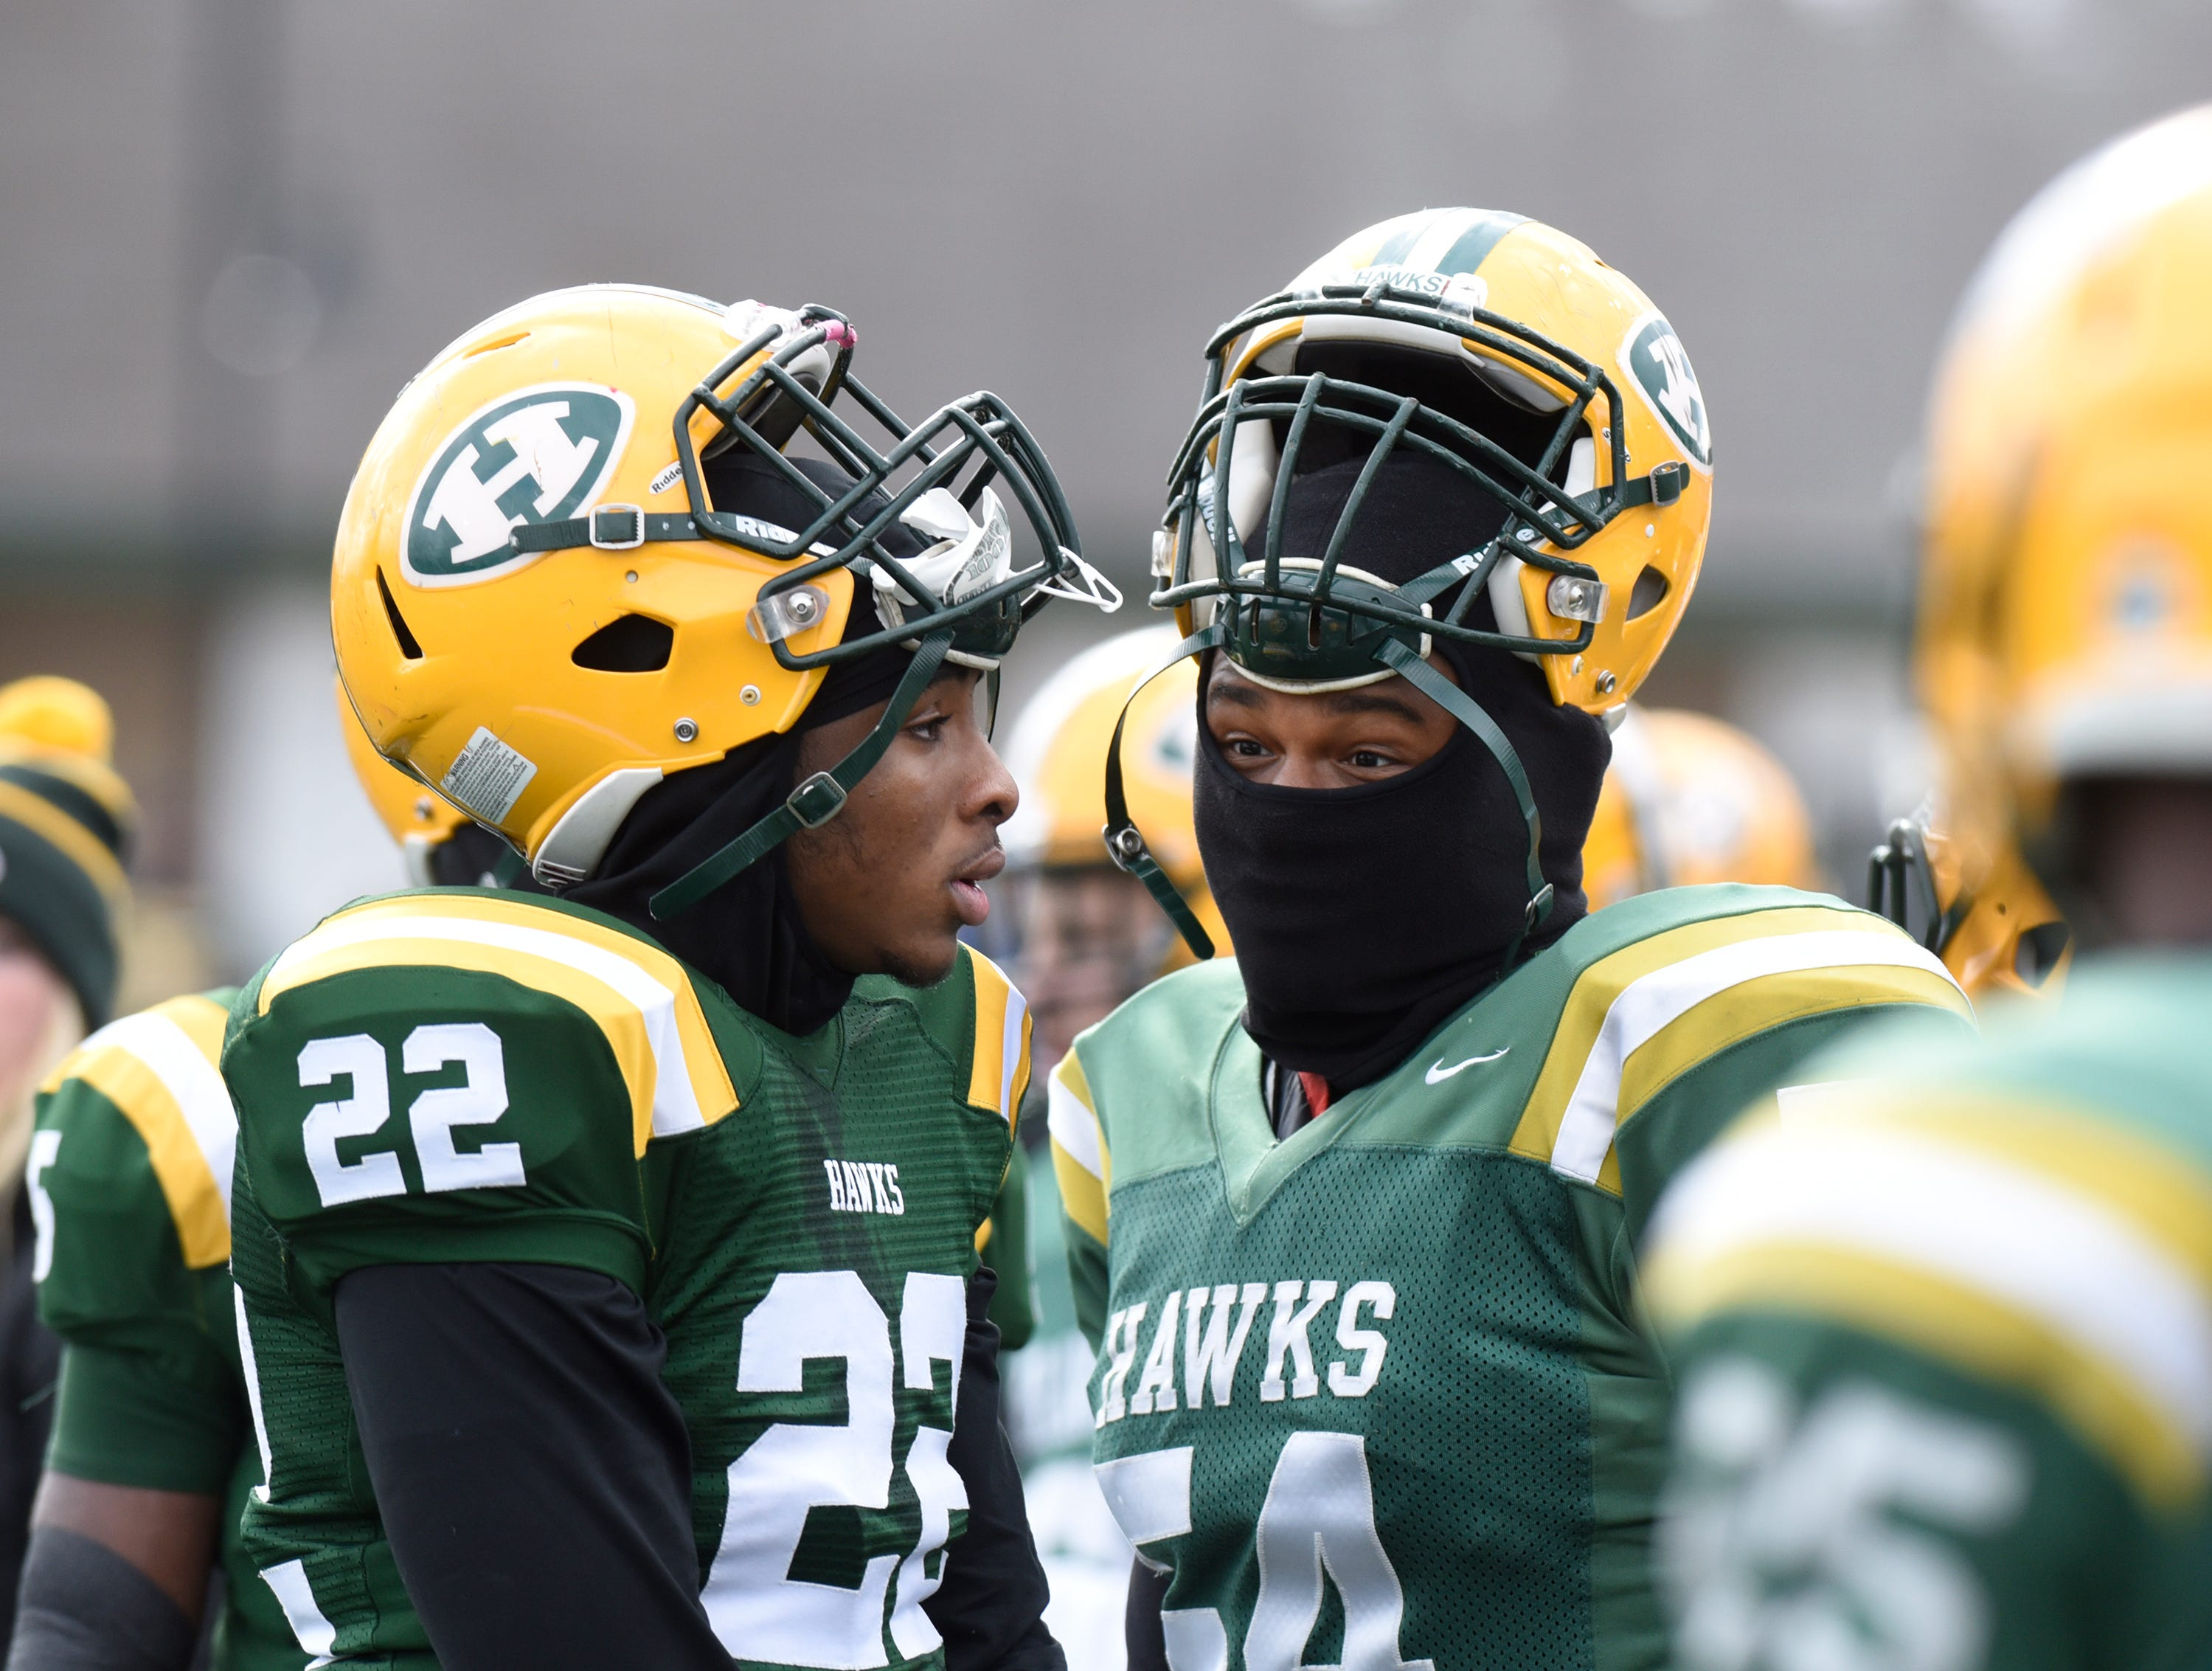 Farmington Harrison TE/LB Sylvon Brown (22) and OL/LB Donovan Colbert (54)during first half of the Division 4 regional final played at Buller Field Nov. 10, 2018